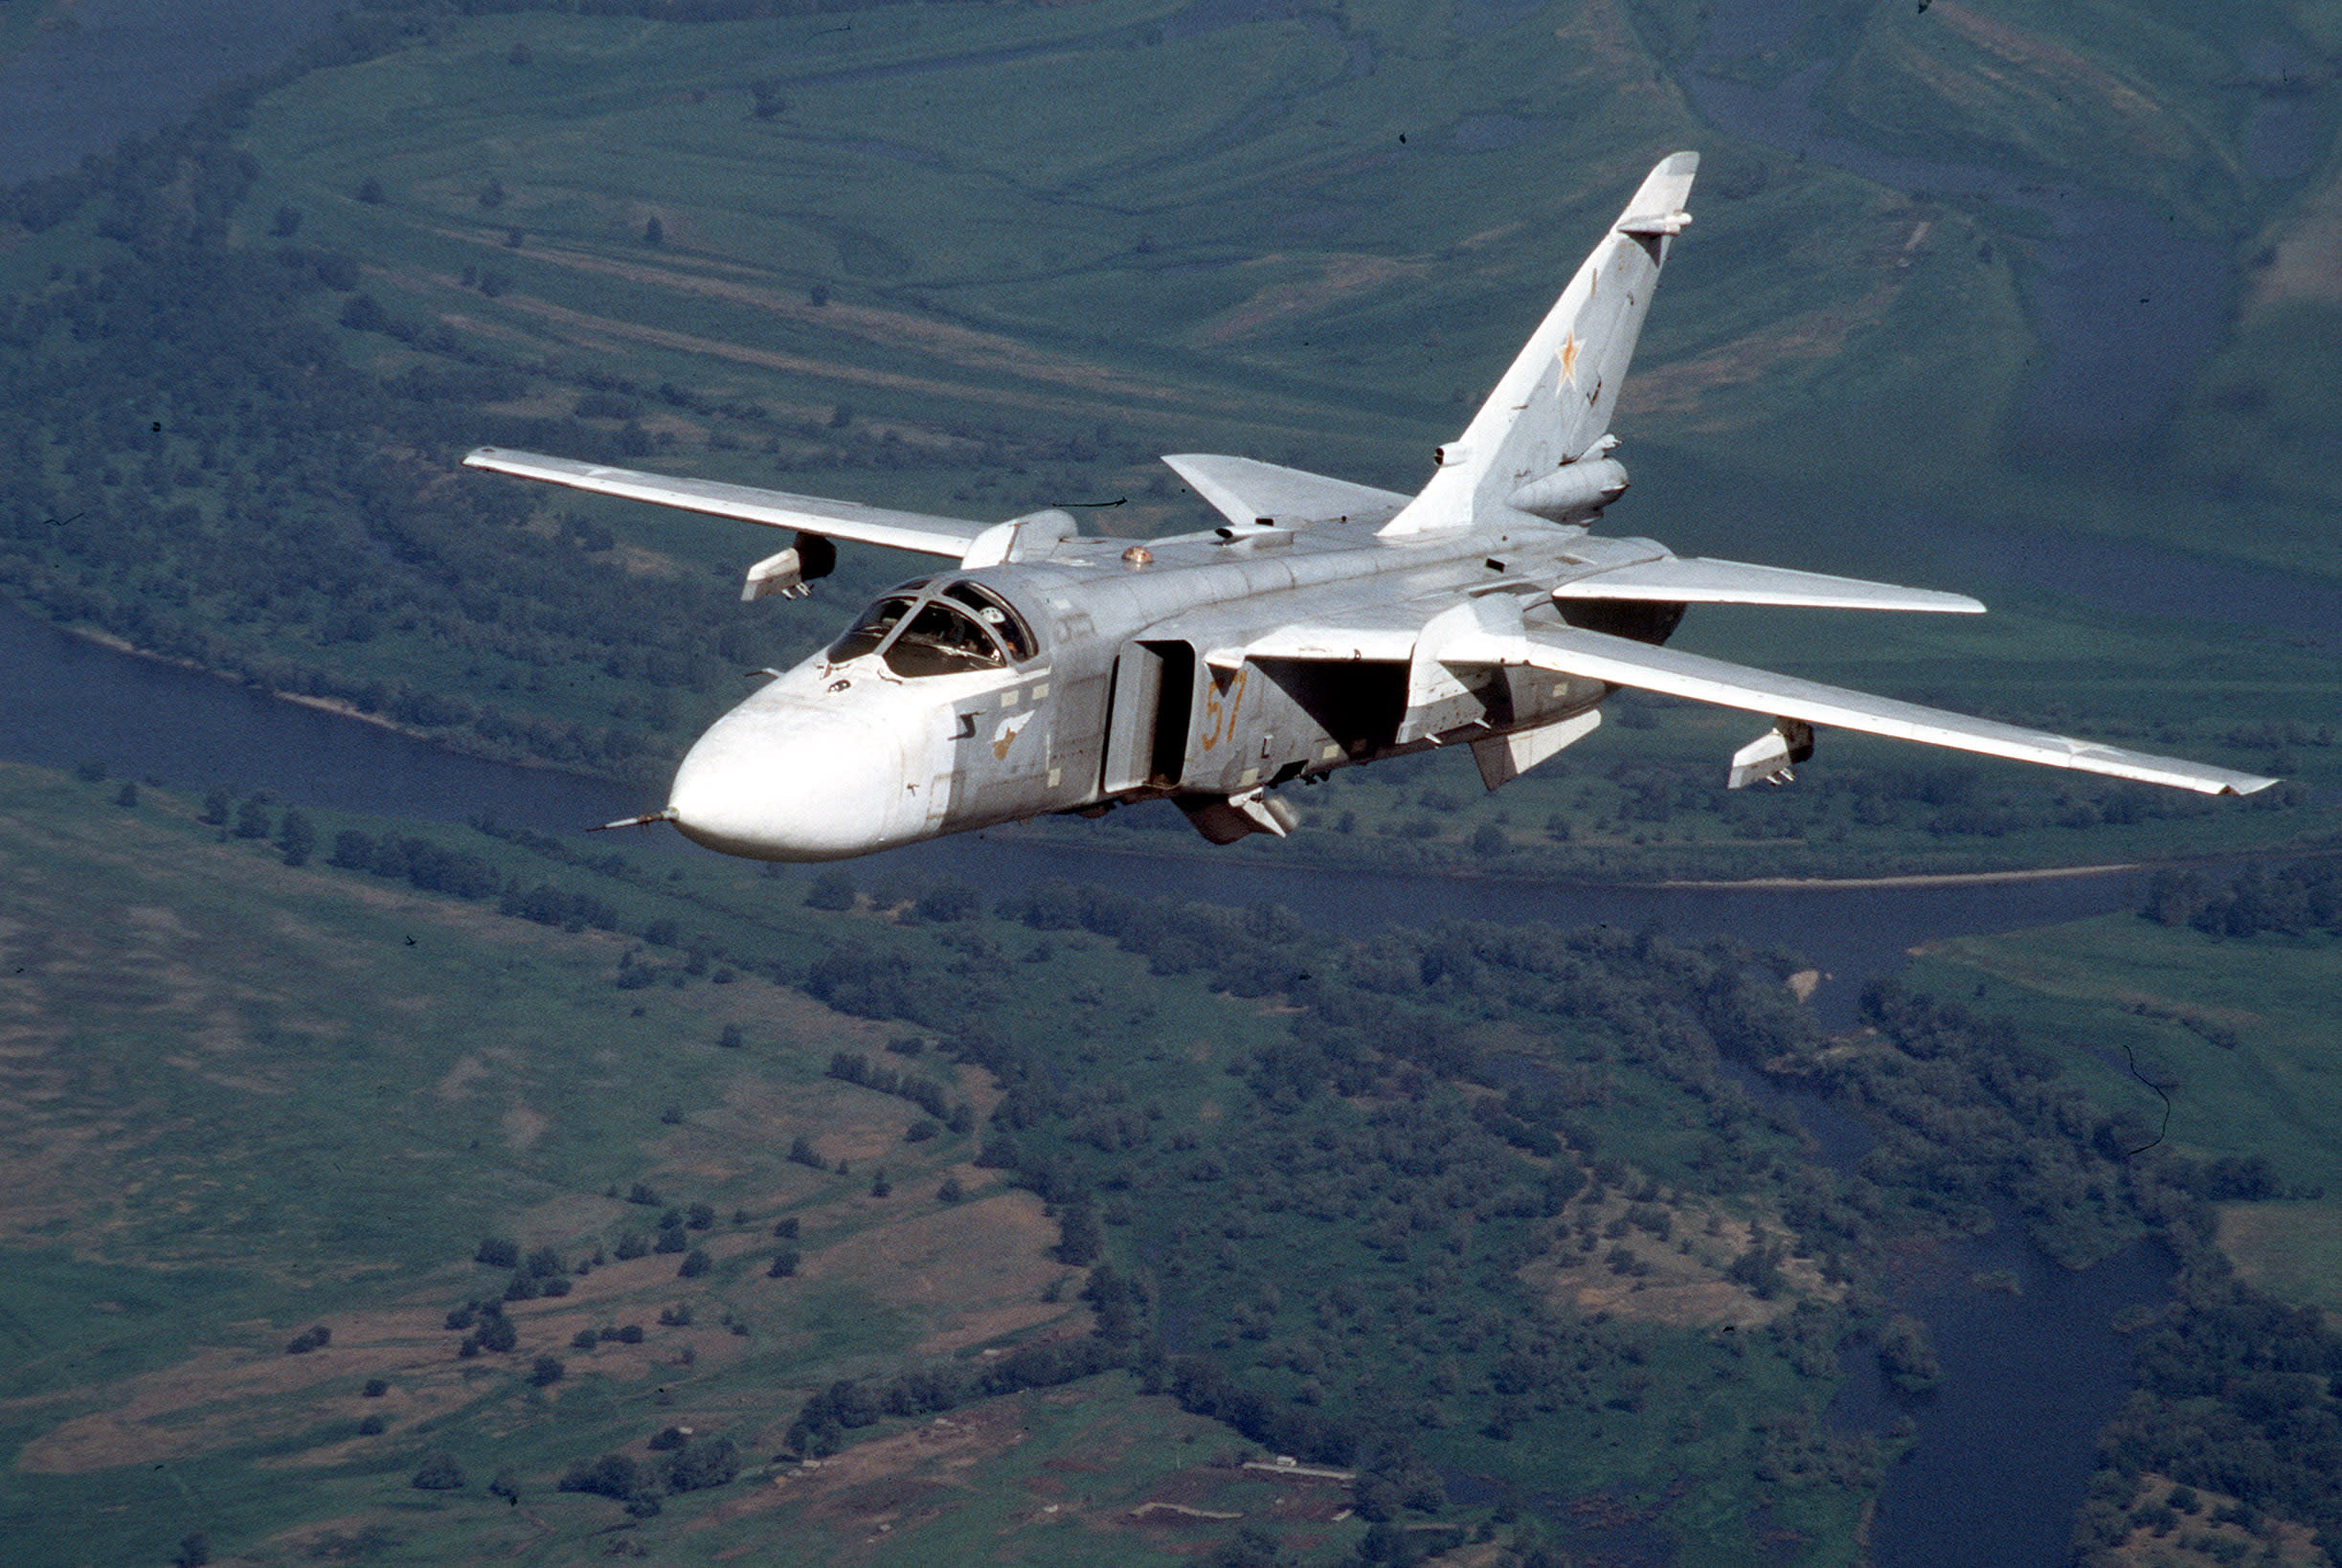 Russia denies it's in talks with Argentina on leasing jets